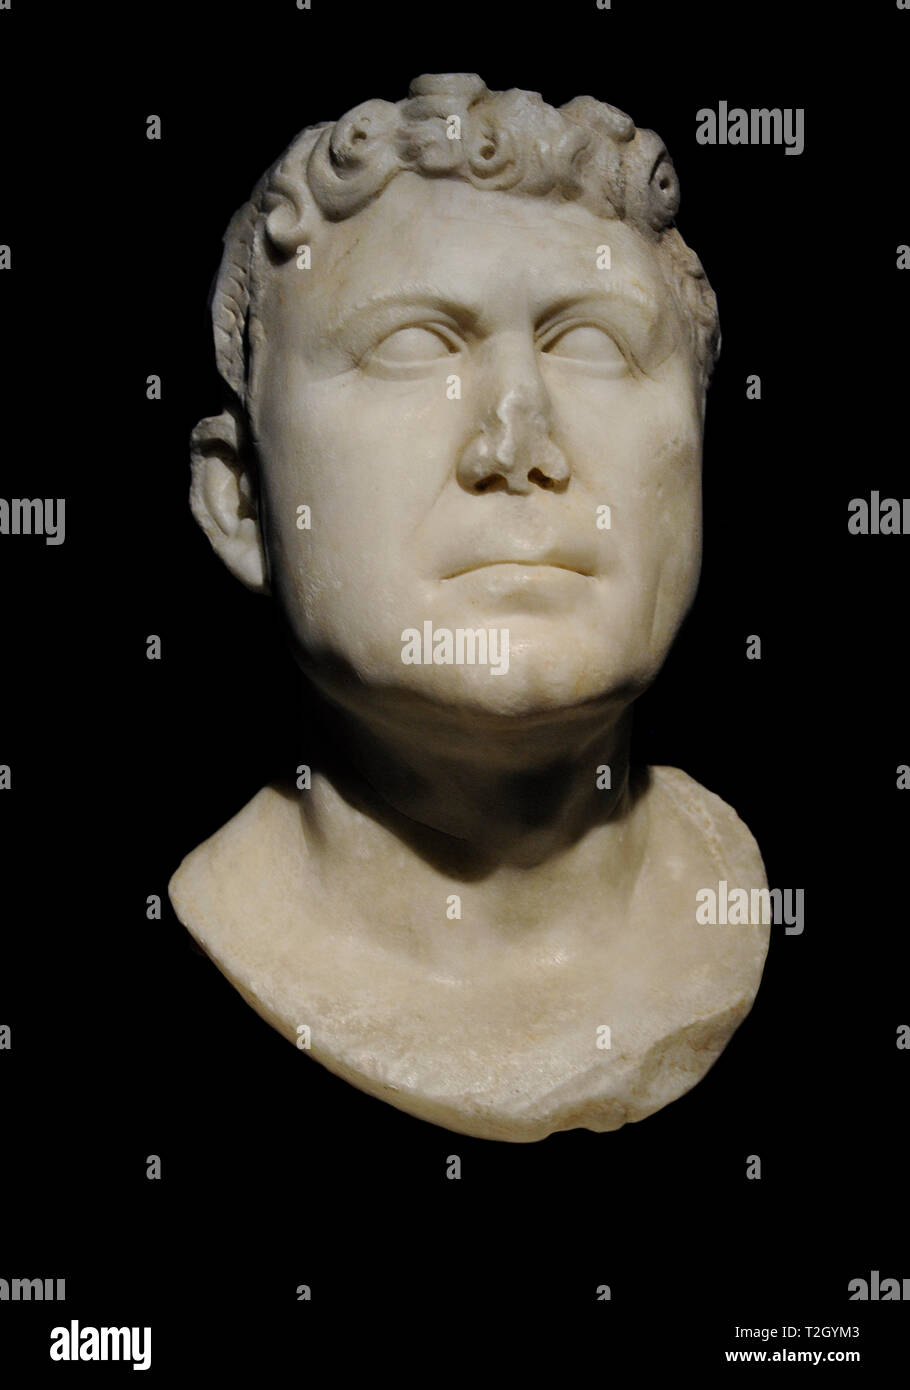 Private portrait of a man. 1st century. Marble. From Augusta Emerita (Merida, province of Badajoz, Extremadura, Spain). National Archaeological Museum. Madrid. Spain. - Stock Image